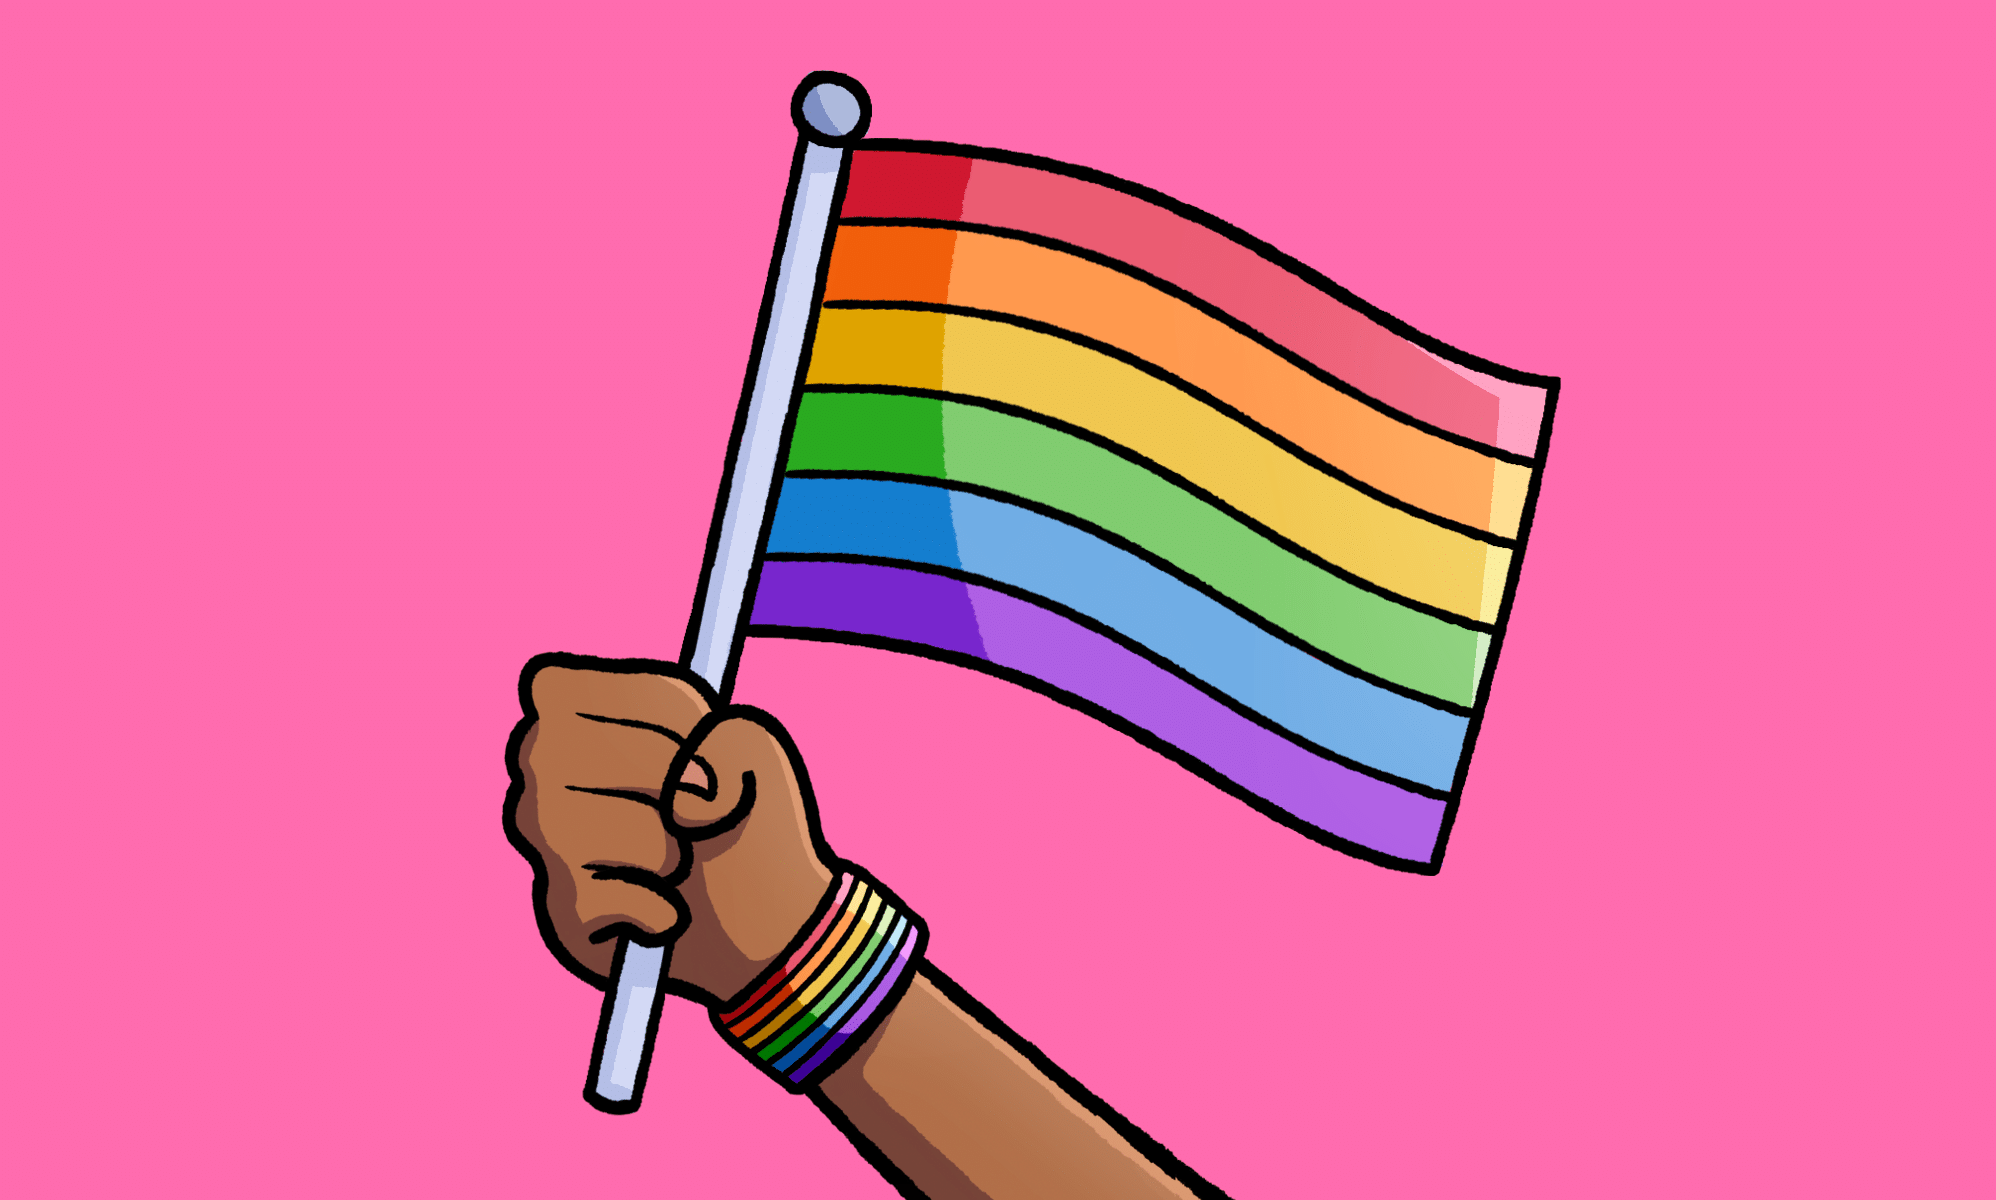 9 things you could ask a bisexual person, but definitely shouldn't